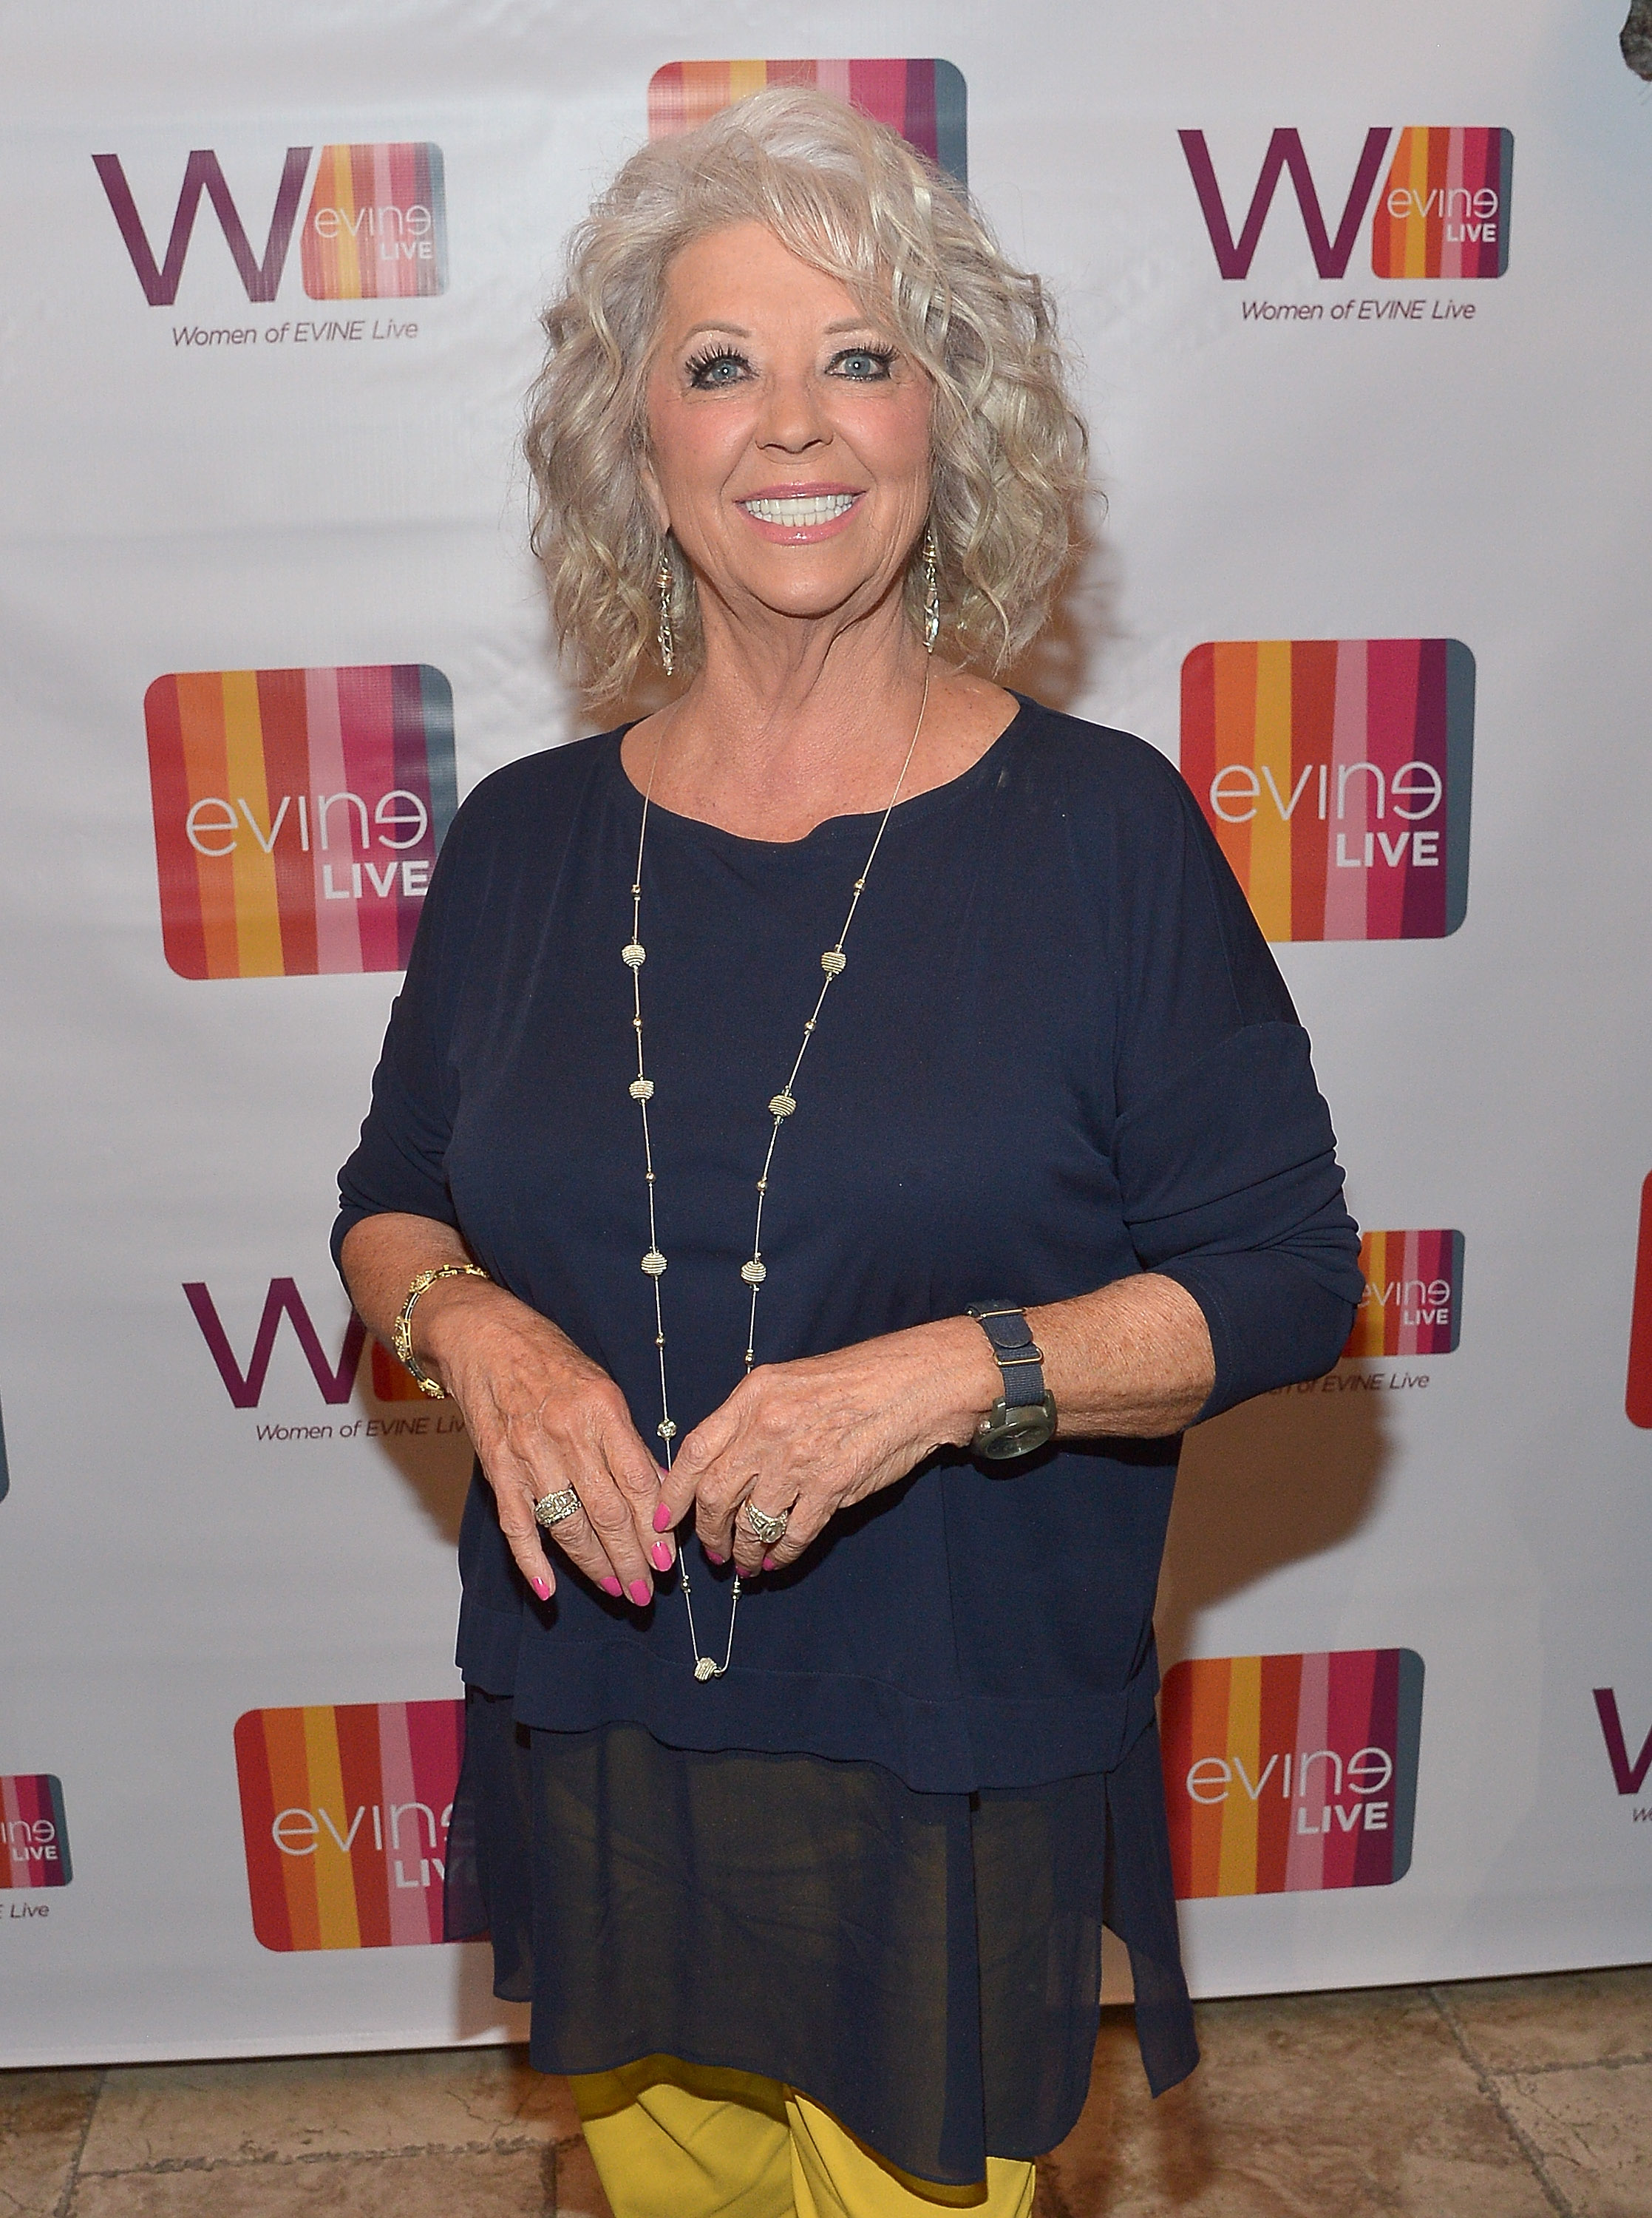 Paula deen photo getty images - Paula Deen Flashed Dancing With The Stars Audience Twice During Racy Routine